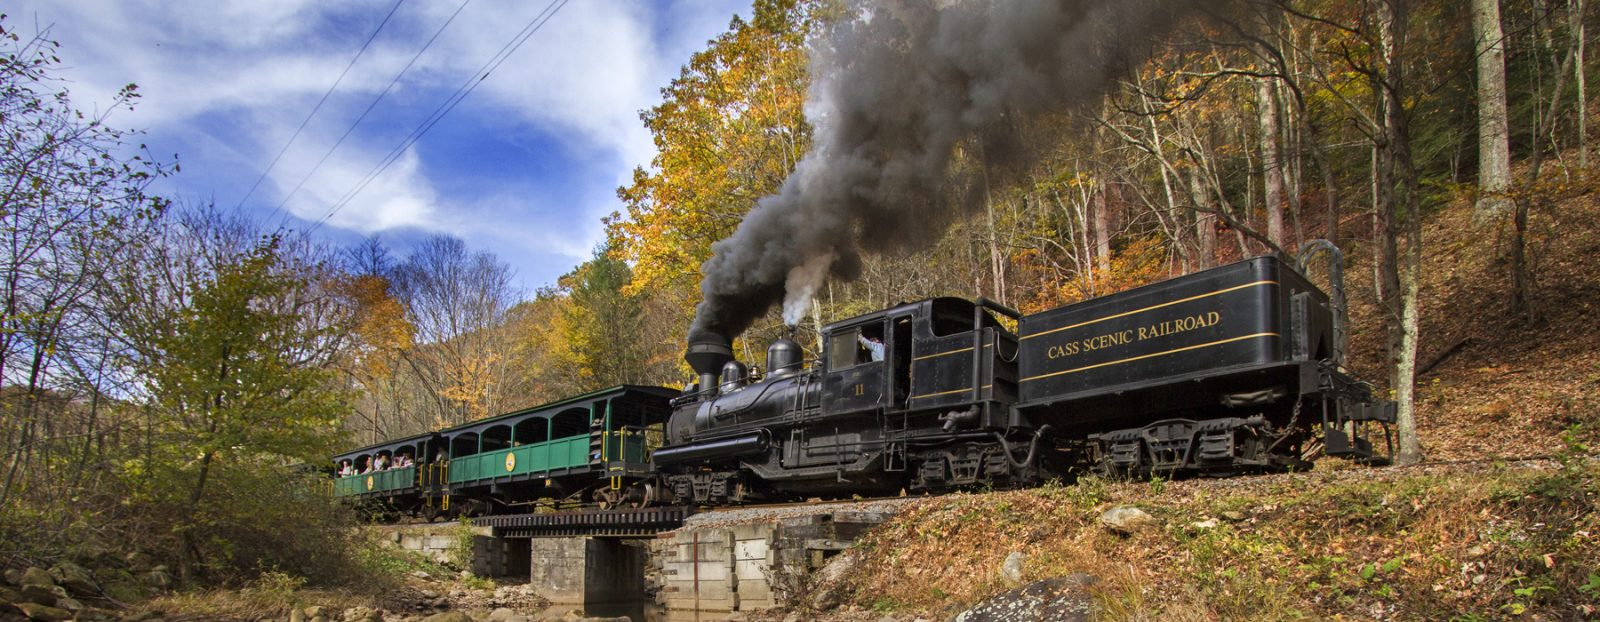 Cass Scenic Whittaker Trip | Mountain Rail WV